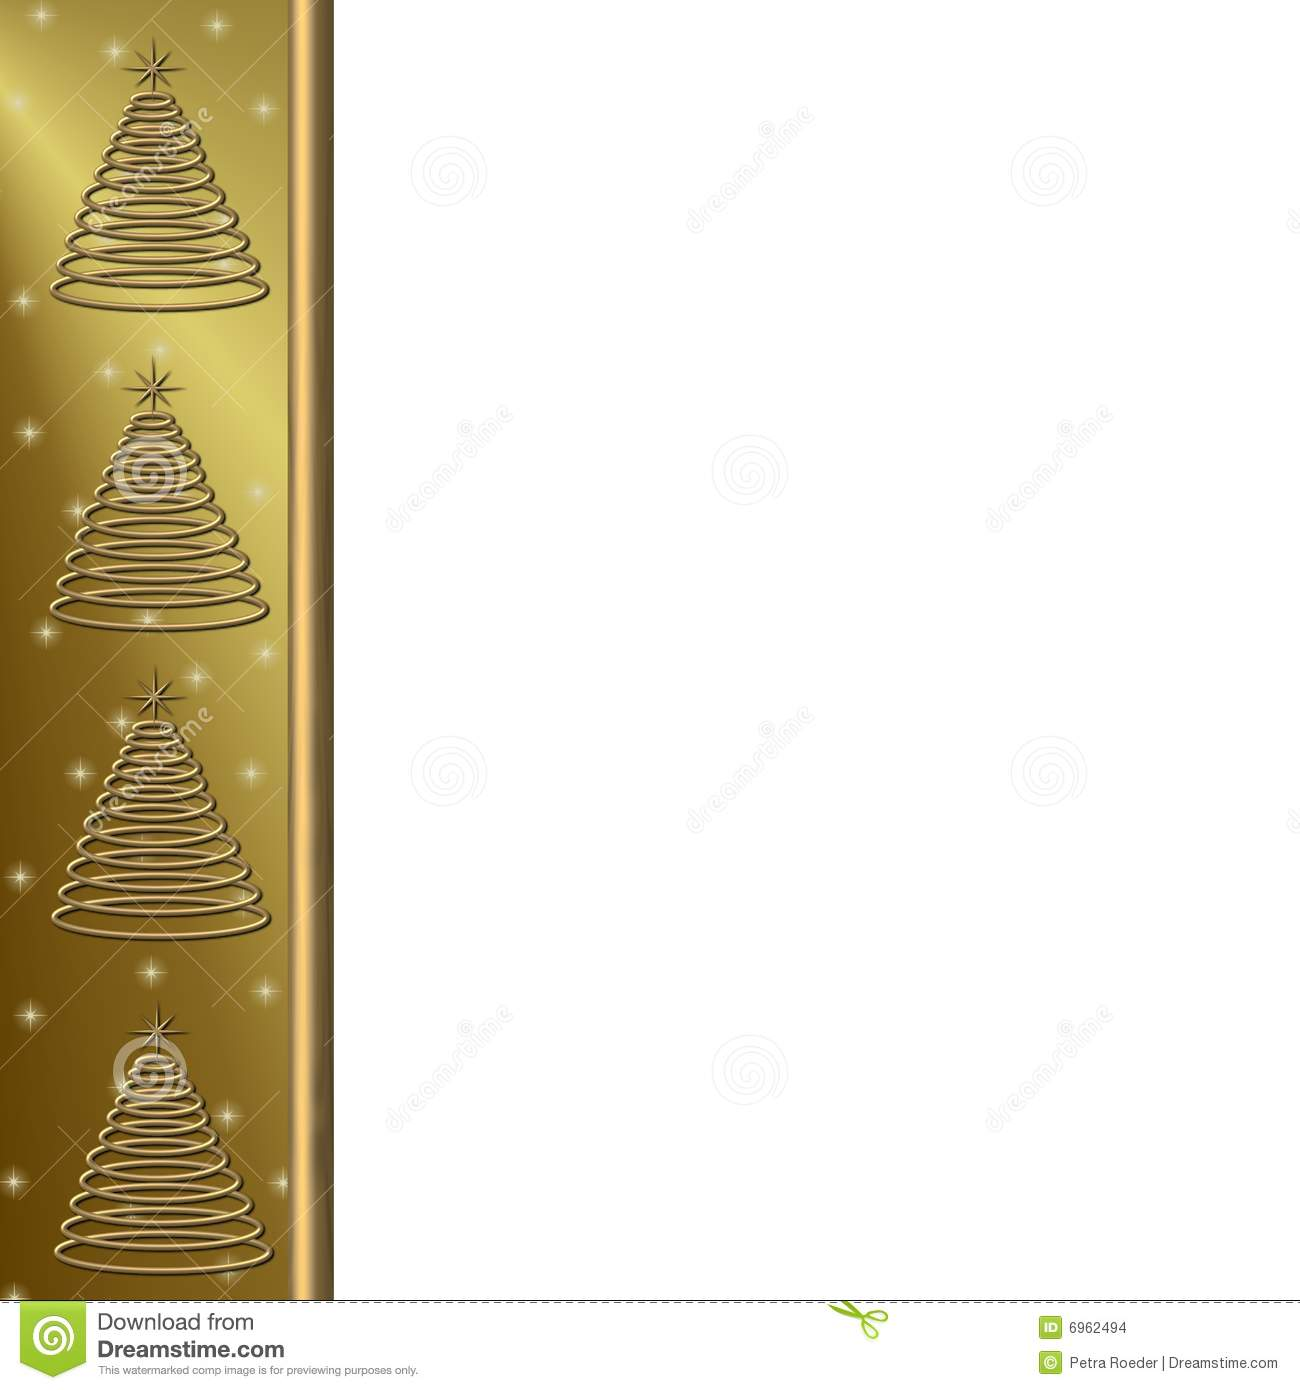 Gold Christmas Tree Border Stock Images - Image: 6962494